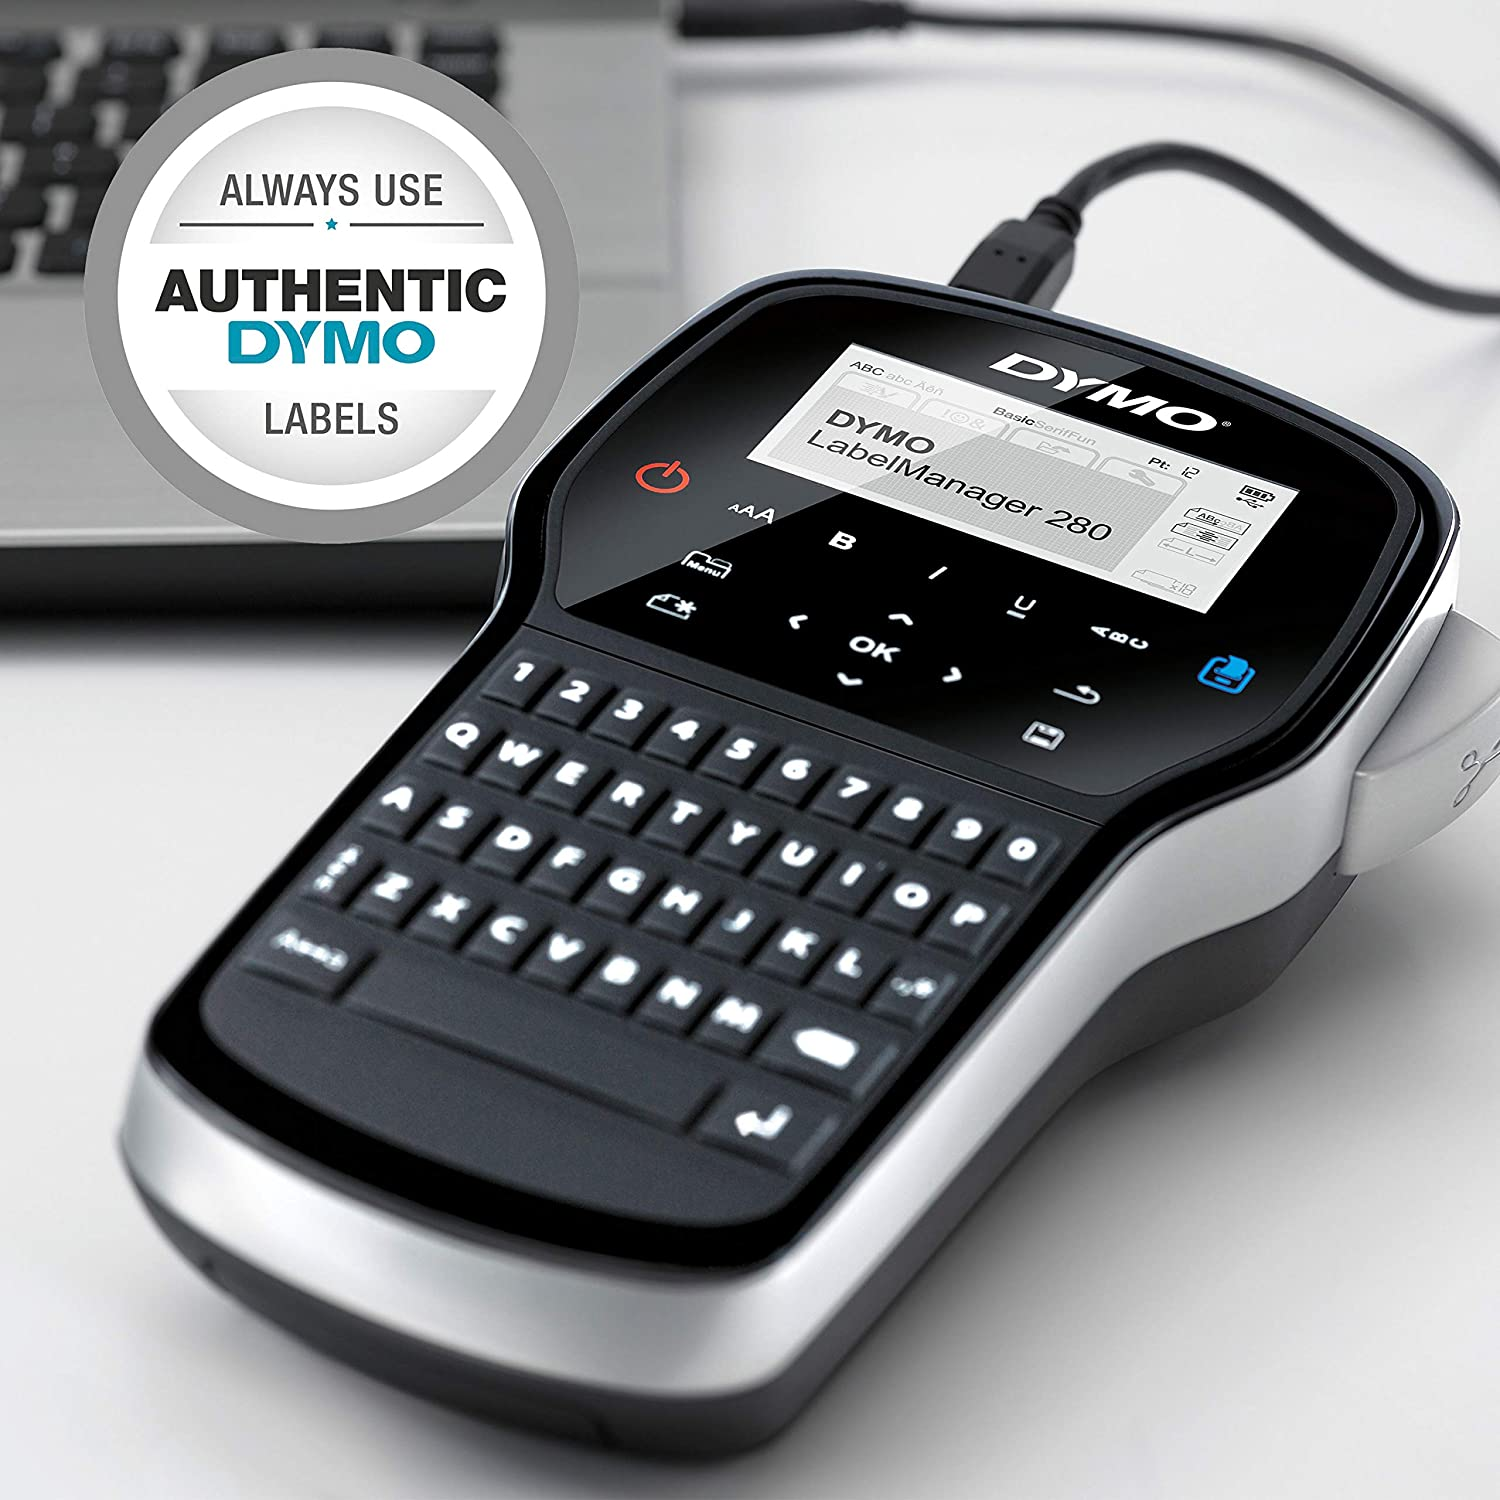 Dymo Label Manager Handheld Label Maker Qwerty Keyboard Assorted Variations New